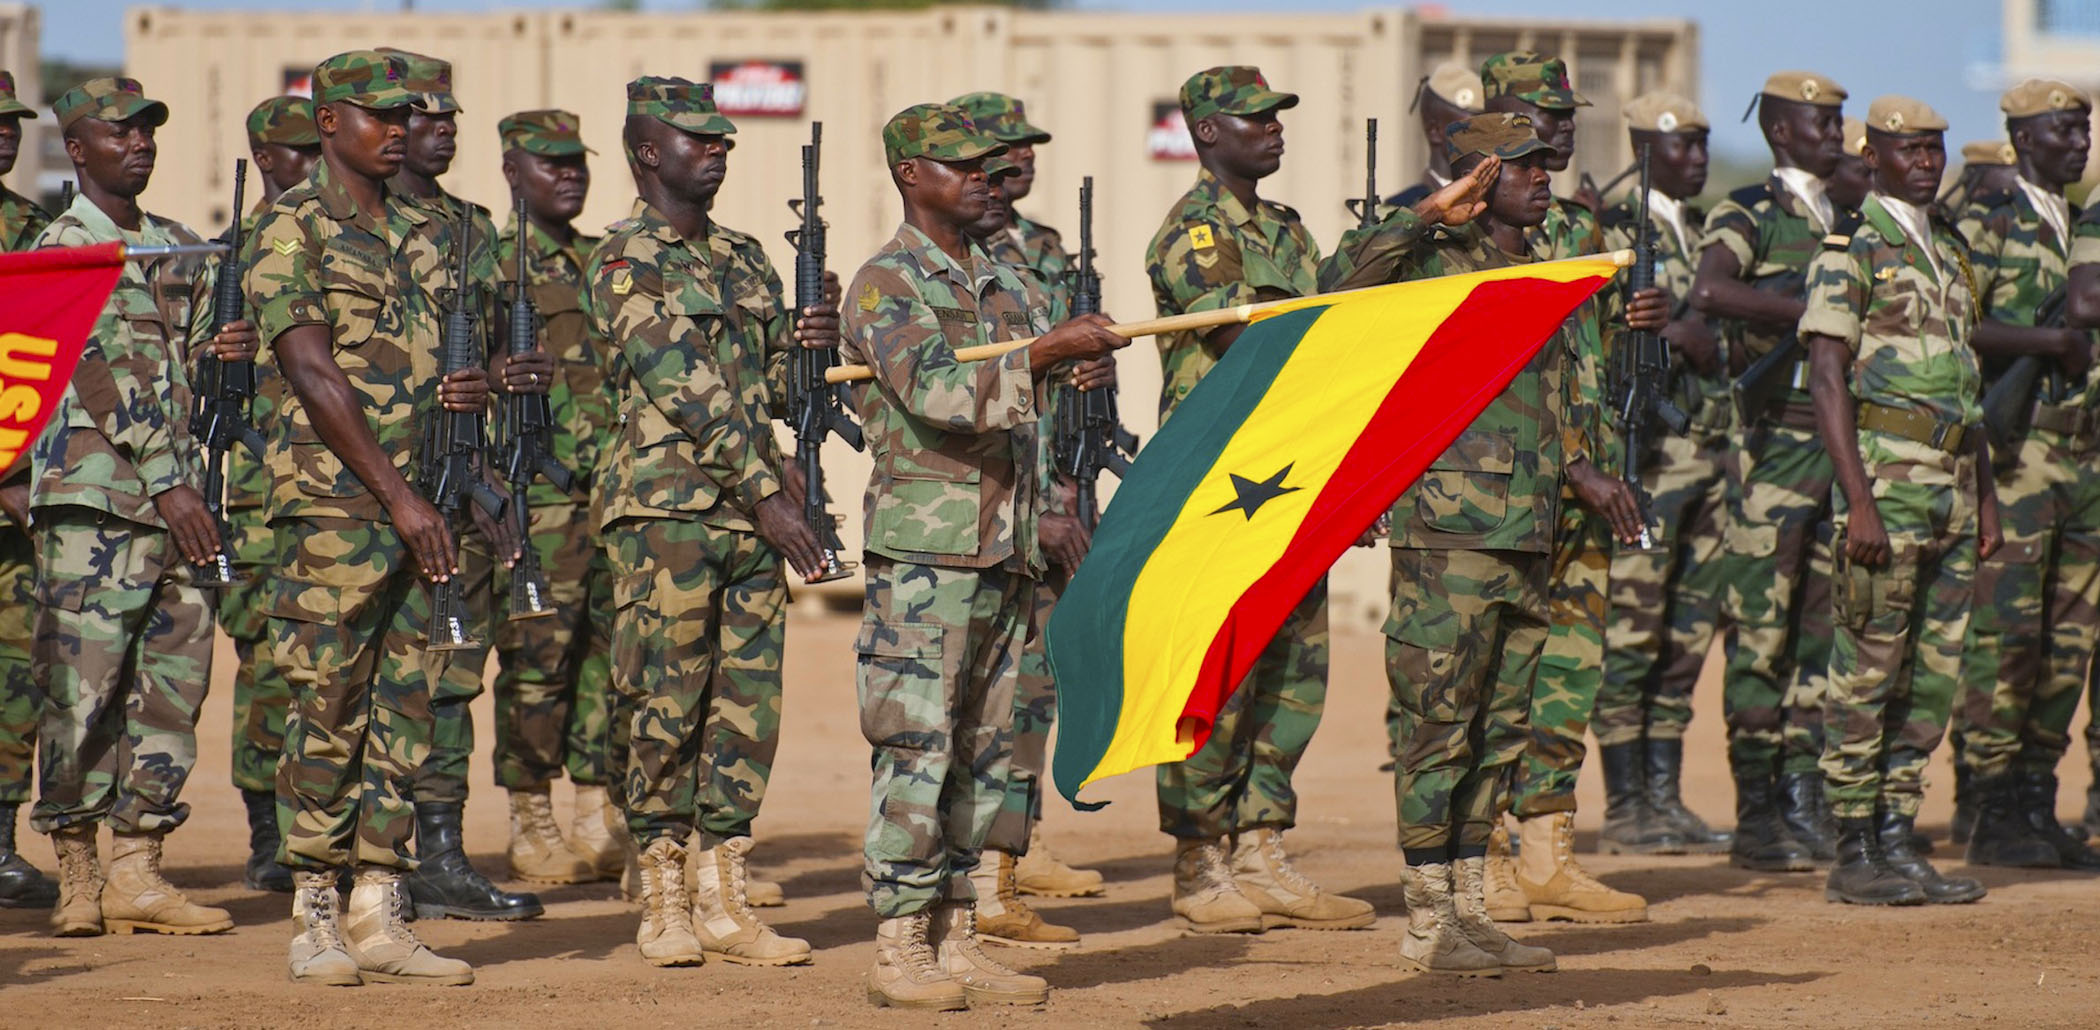 West African militaries and U.S. forces participate in opening ceremonies for exercise WA 14